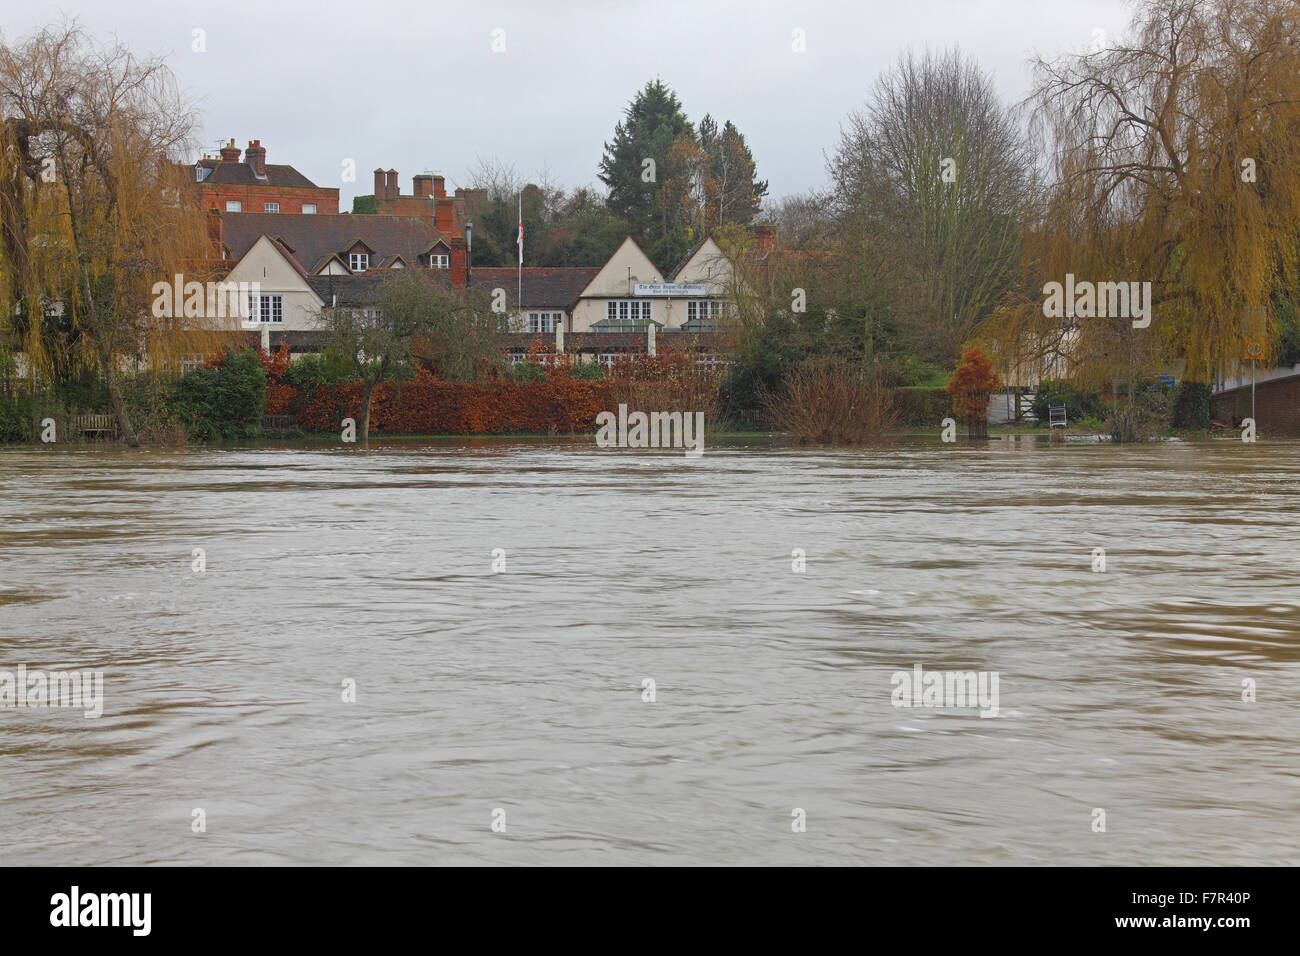 A view across a swollen river looking at a large hotel on the other side with flooded towpath and dark skies. - Stock Image